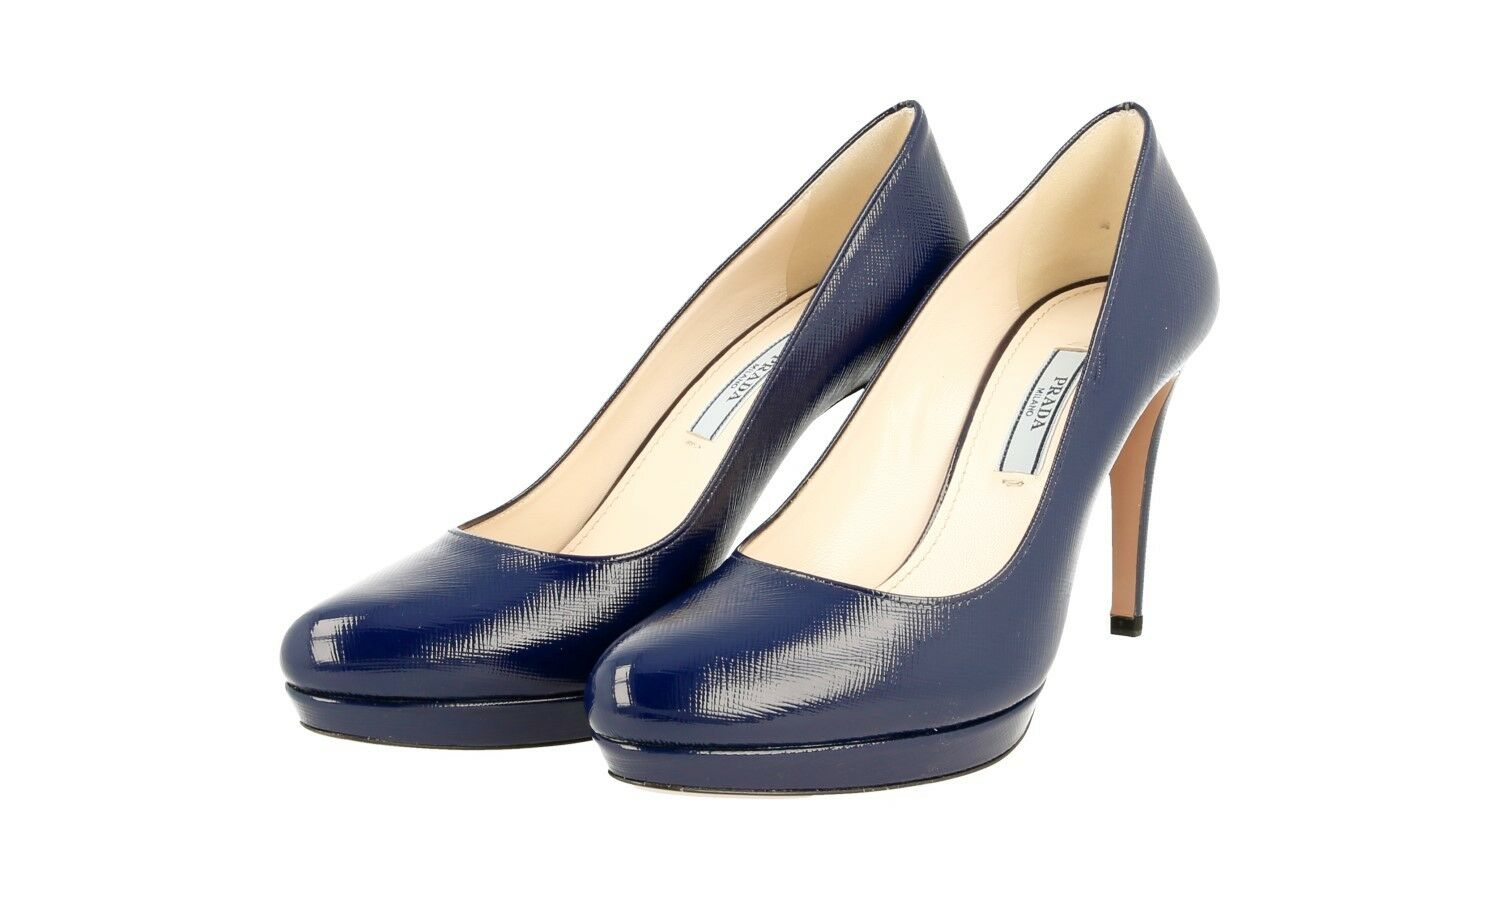 LUXUS PRADA SAFFIANO PUMPS SCHUHE 1IP079 ROYAL BLAU NEU NEU NEU NEW 40,5 41 UK 7.5 dd0e91